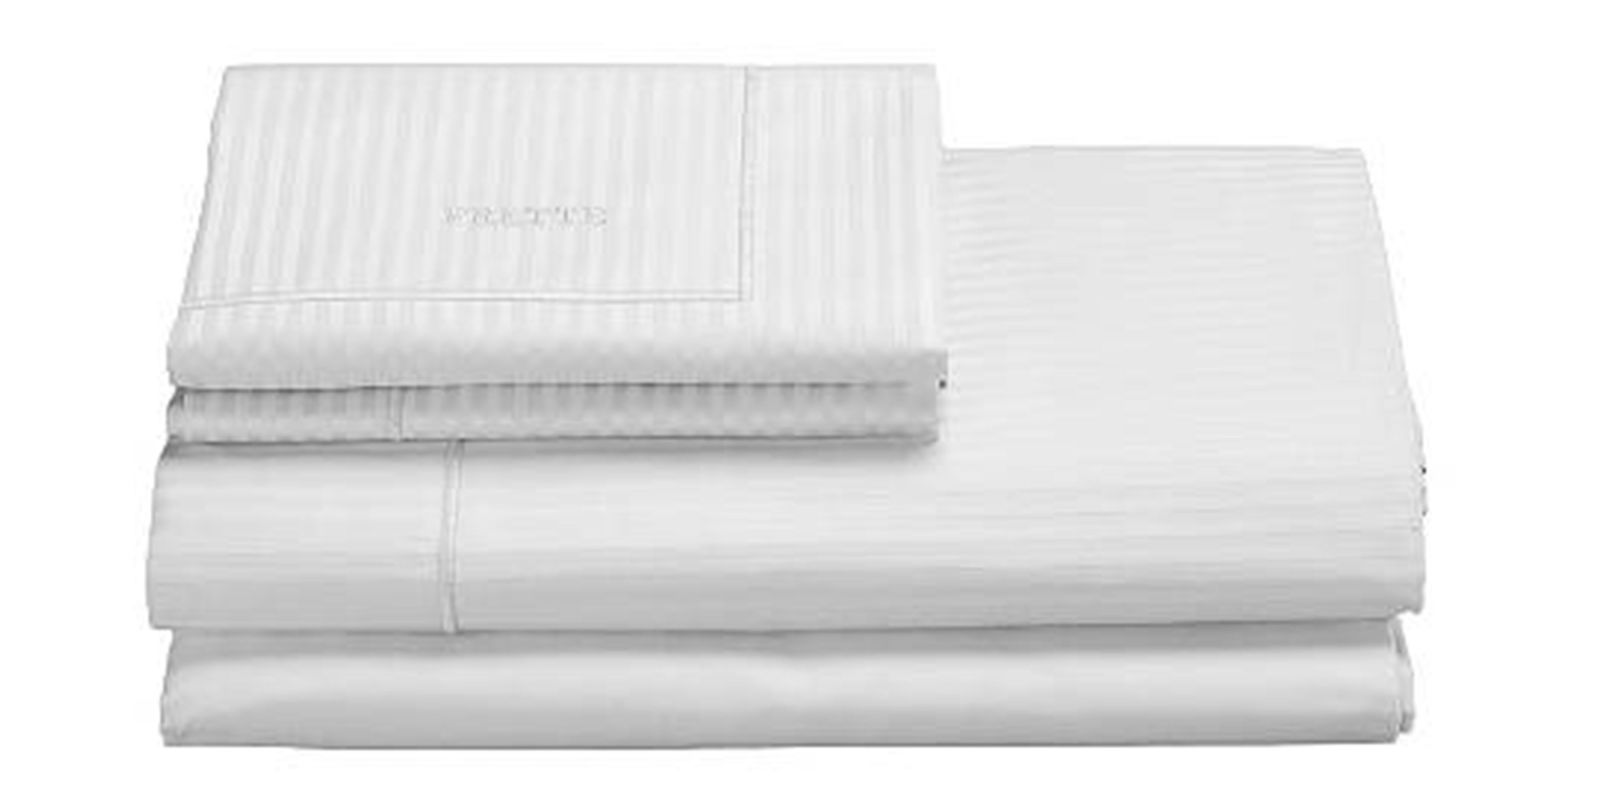 Superior Fieldcrest Luxury Sheets | Fieldcrest Luxury Matelasse Coverlet | Target  King Size Sheets